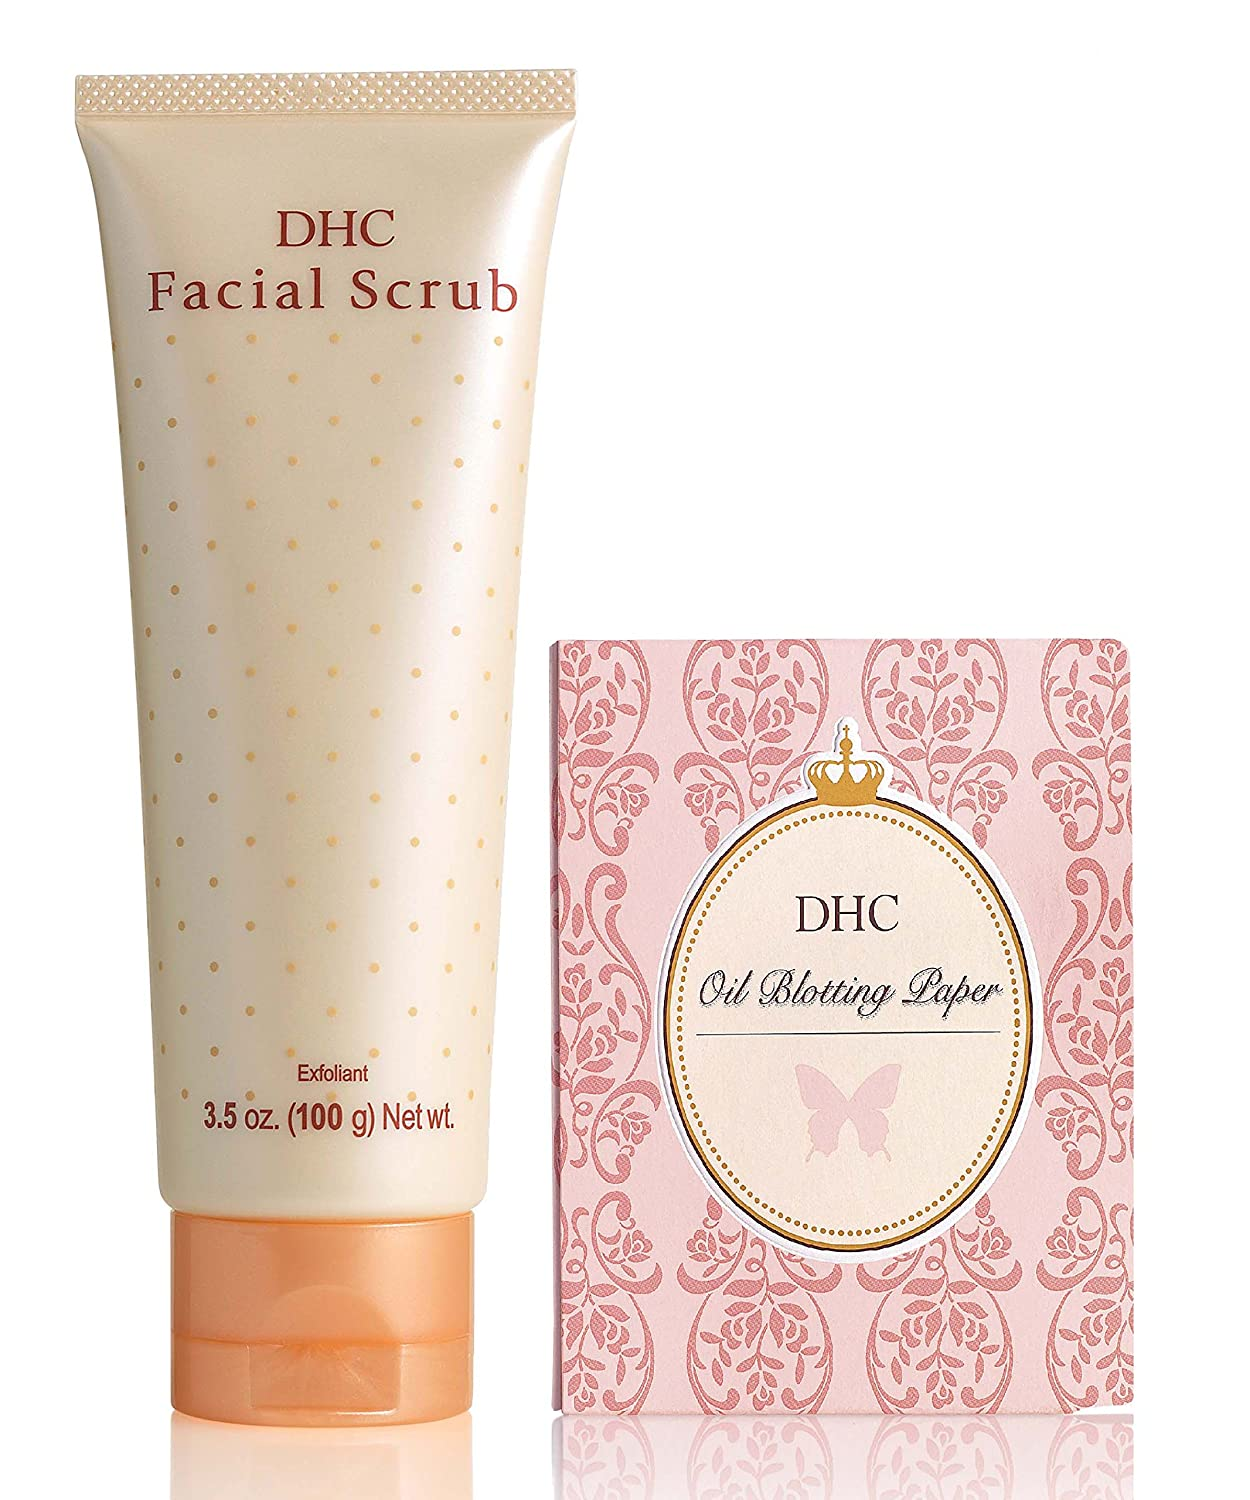 DHC Facial Scrub and Blotting Paper